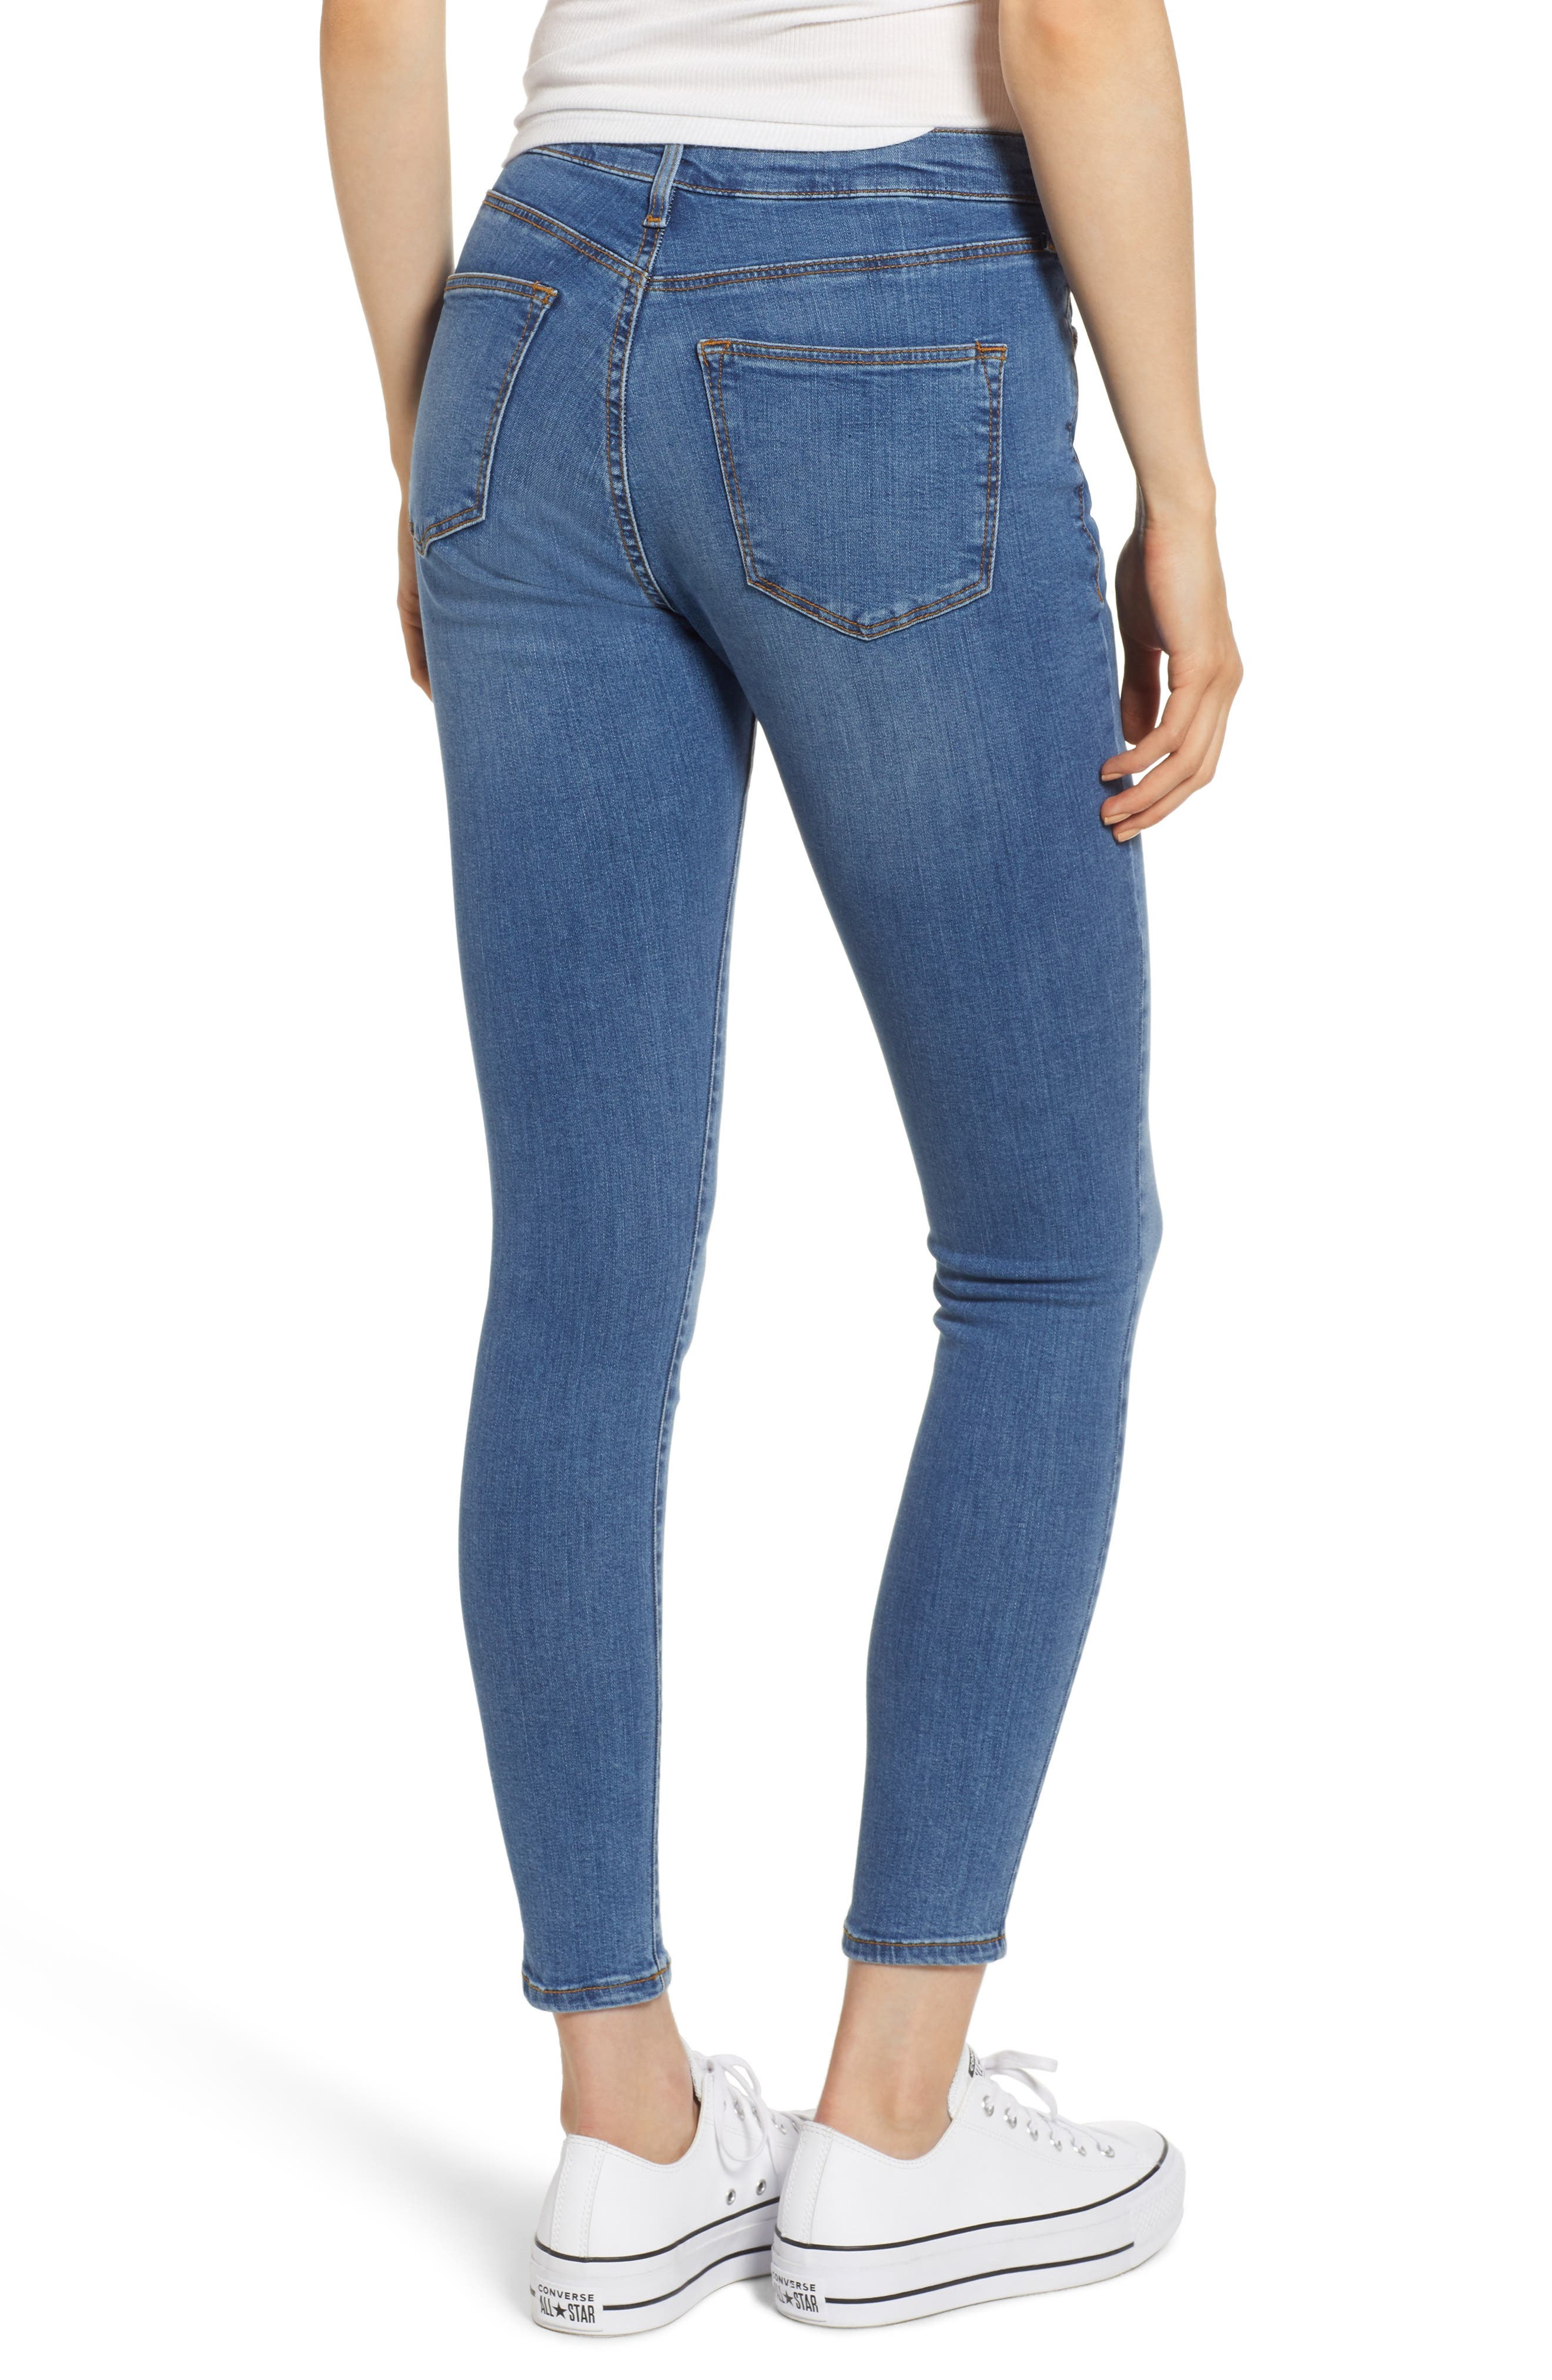 MOTO Sidney Stretch Skinny Jeans,                             Alternate thumbnail 4, color,